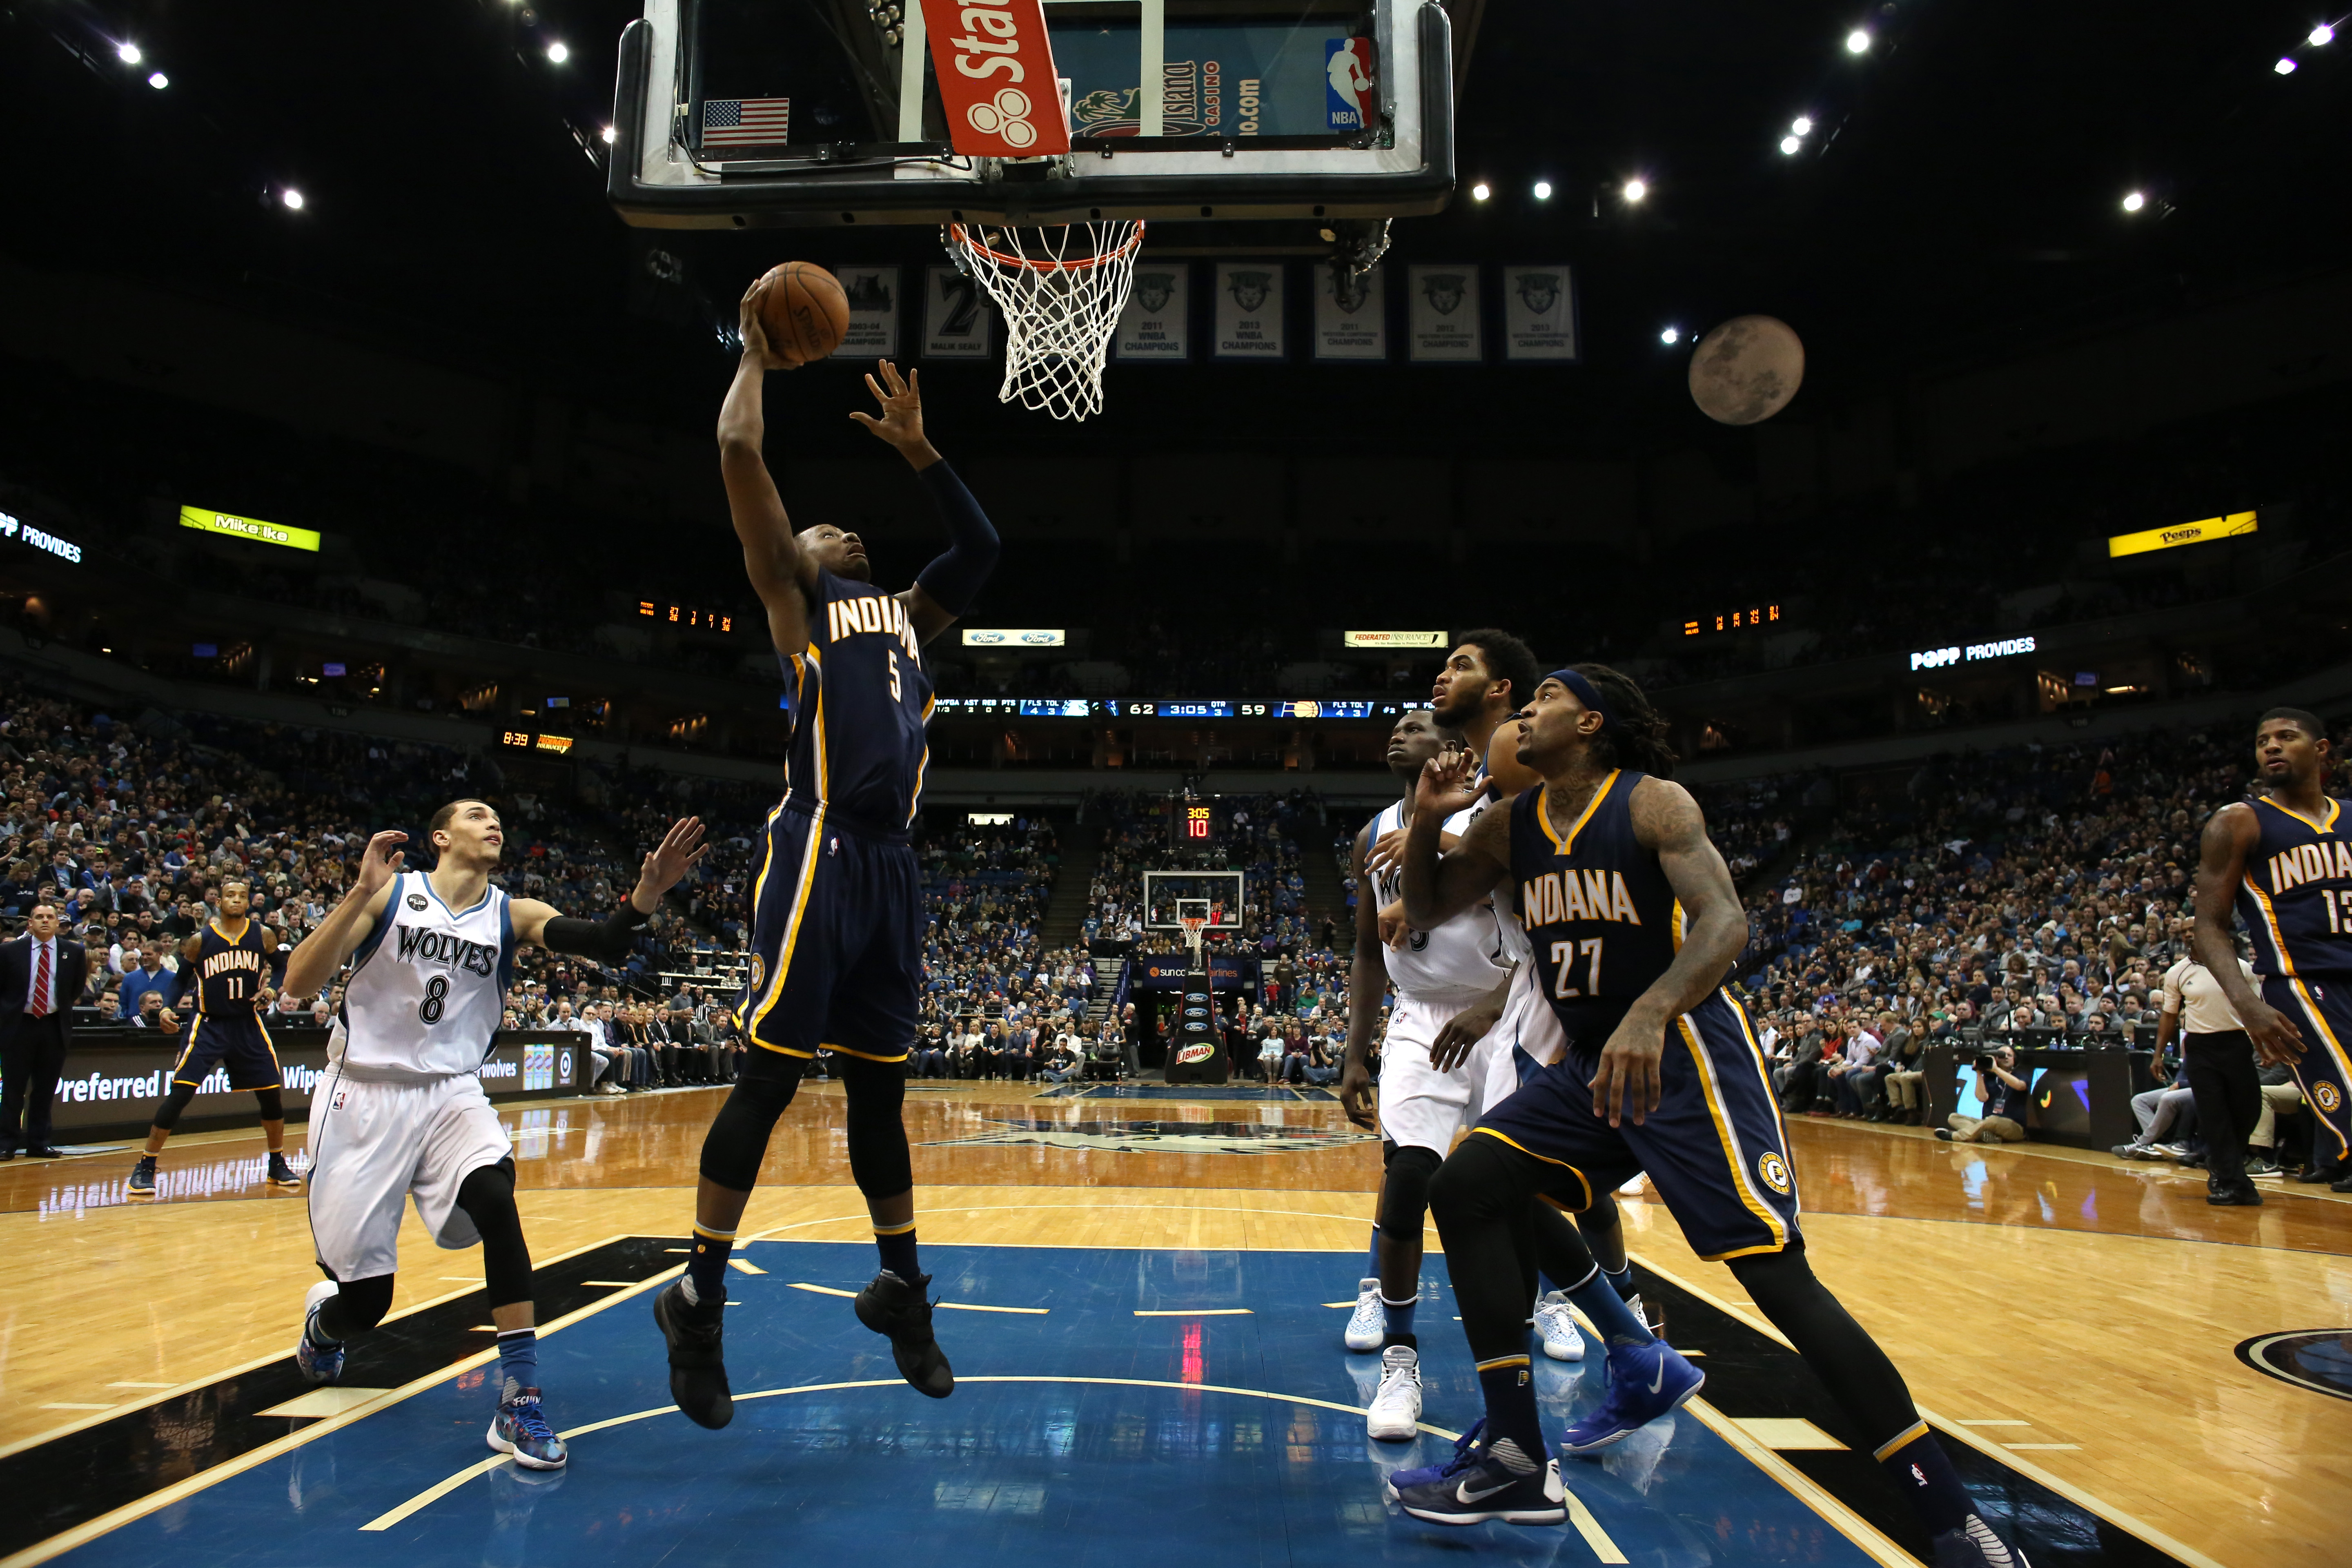 MINNEAPOLIS, MN -  DECEMBER 26:  Lavoy Allen #5 of the Indiana Pacers goes to the basket against the Minnesota Timberwolves on December 26, 2015 at Target Center in Minneapolis, Minnesota. (Photo by Jordan Johnson/NBAE via Getty Images)